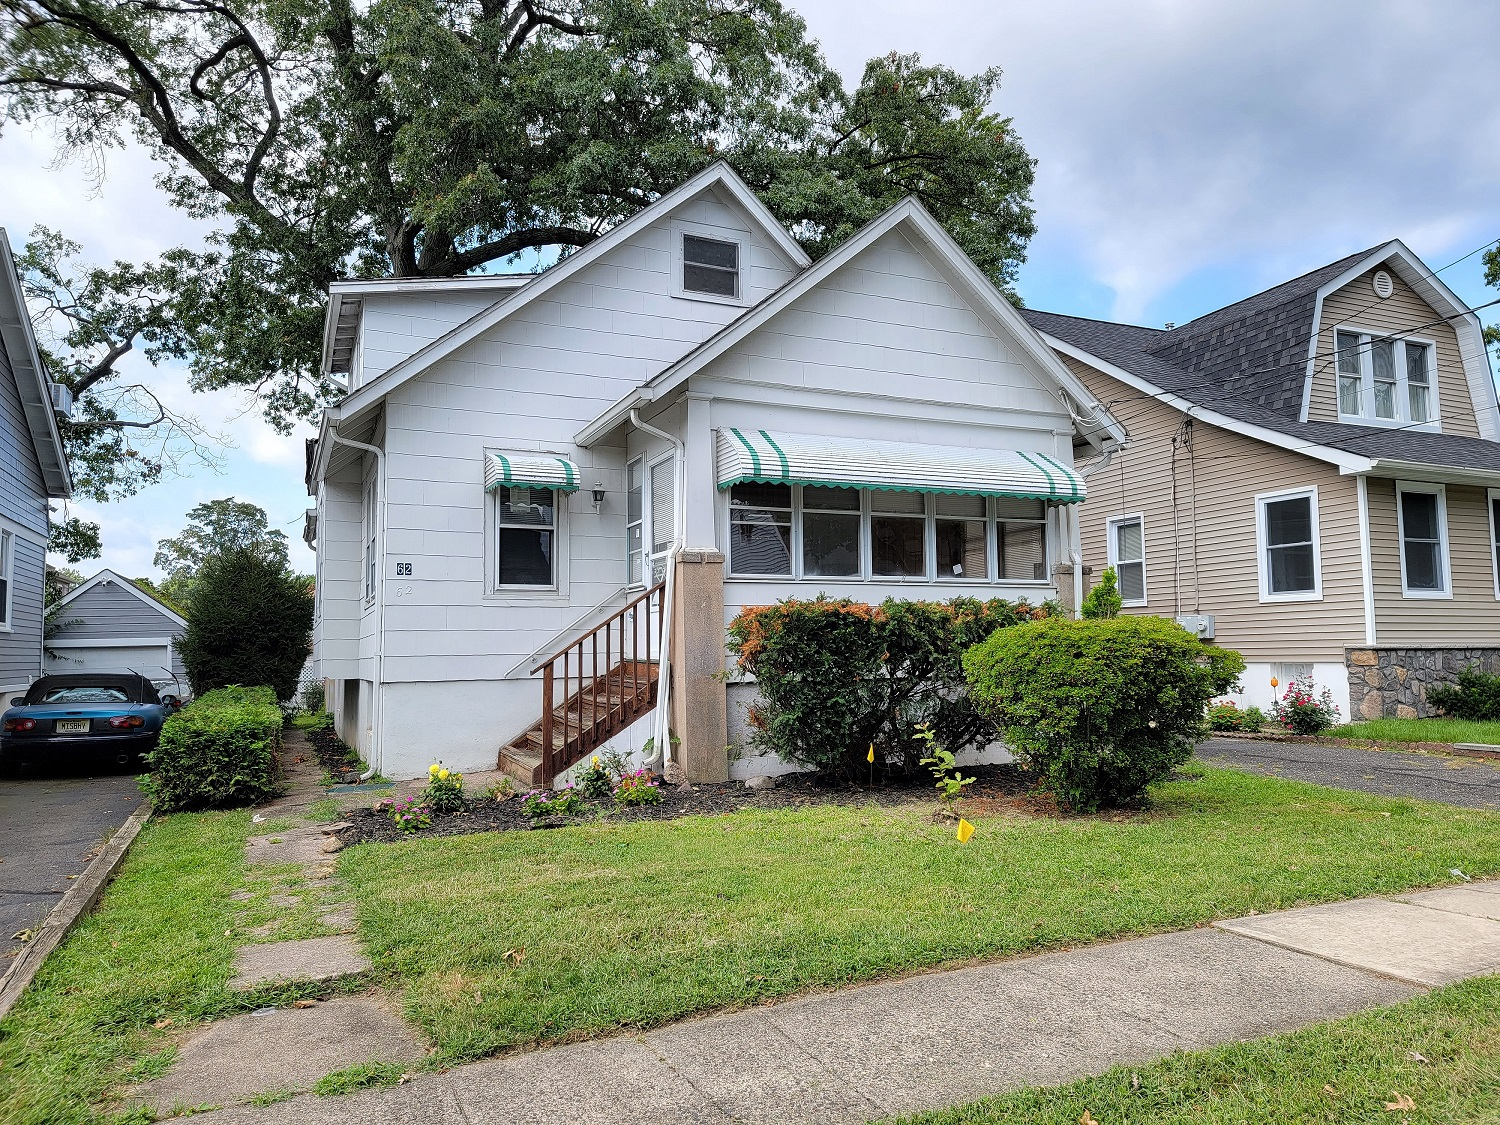 [FOR SALE] 68 9TH AVE., HAWTHORNE, NJ 07506